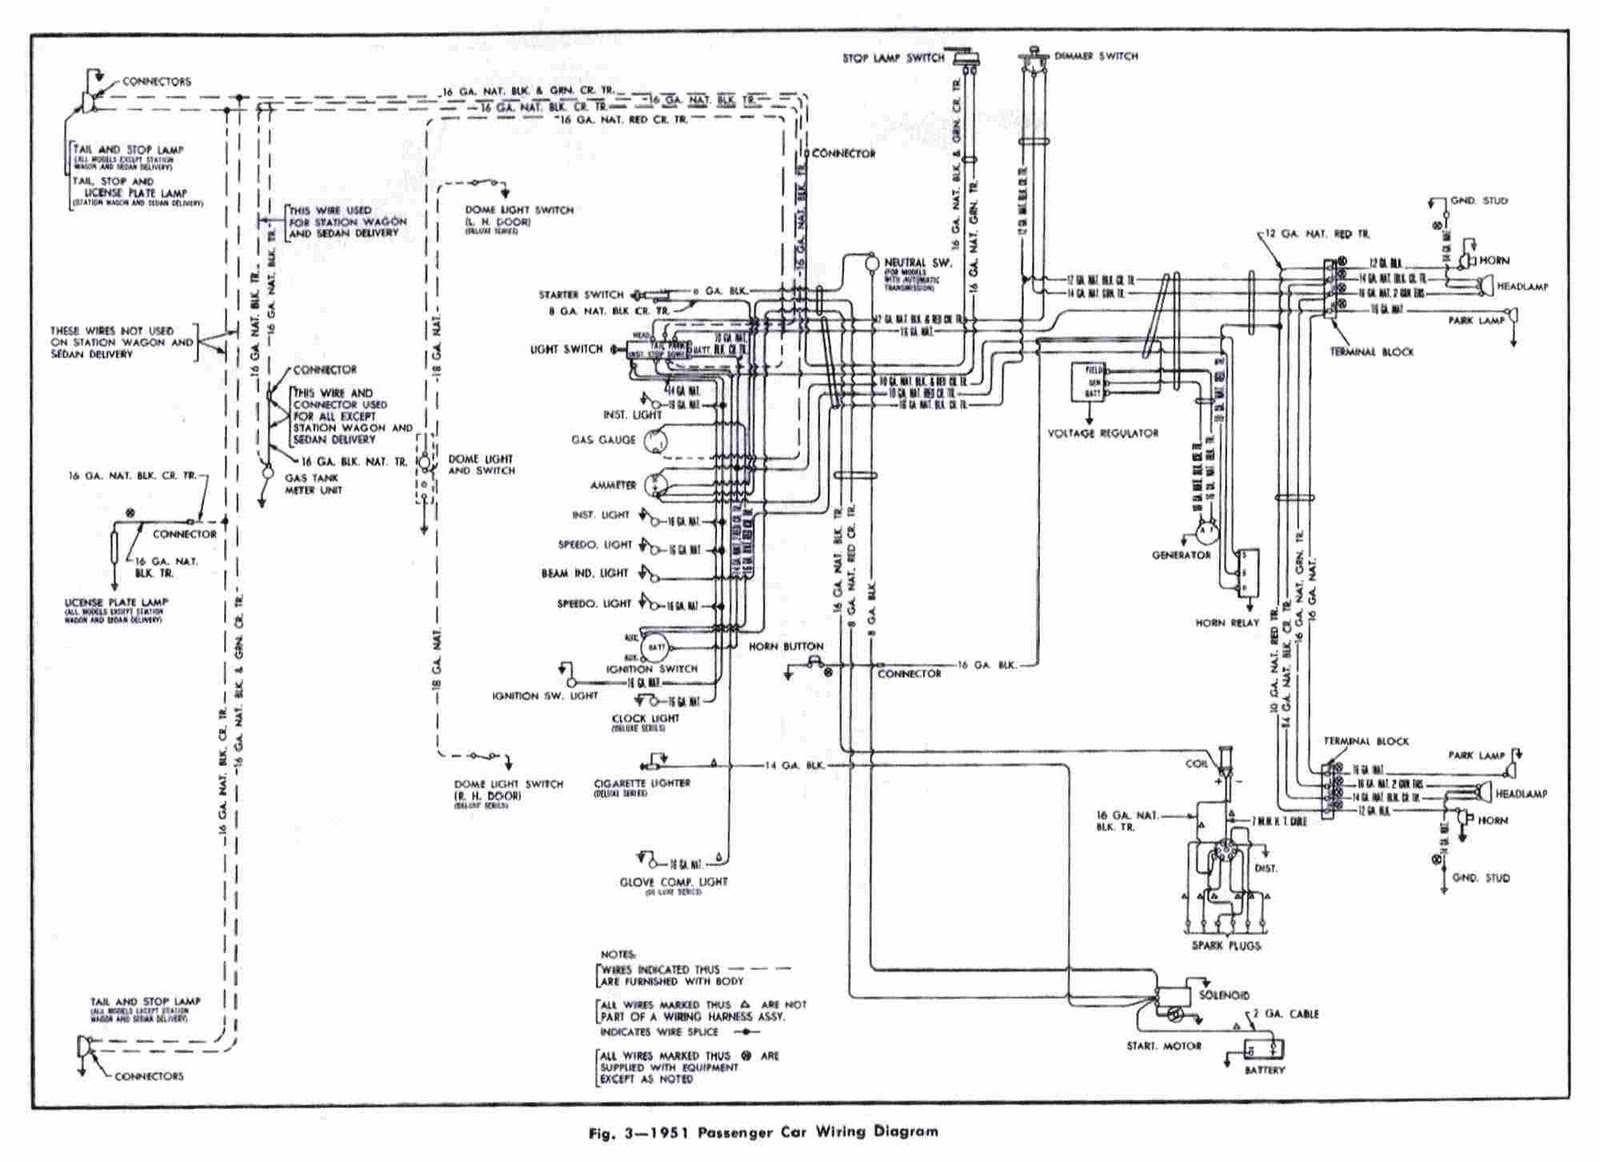 Wiring Diagram Vehicle : Chevrolet passenger car wiring diagram all about